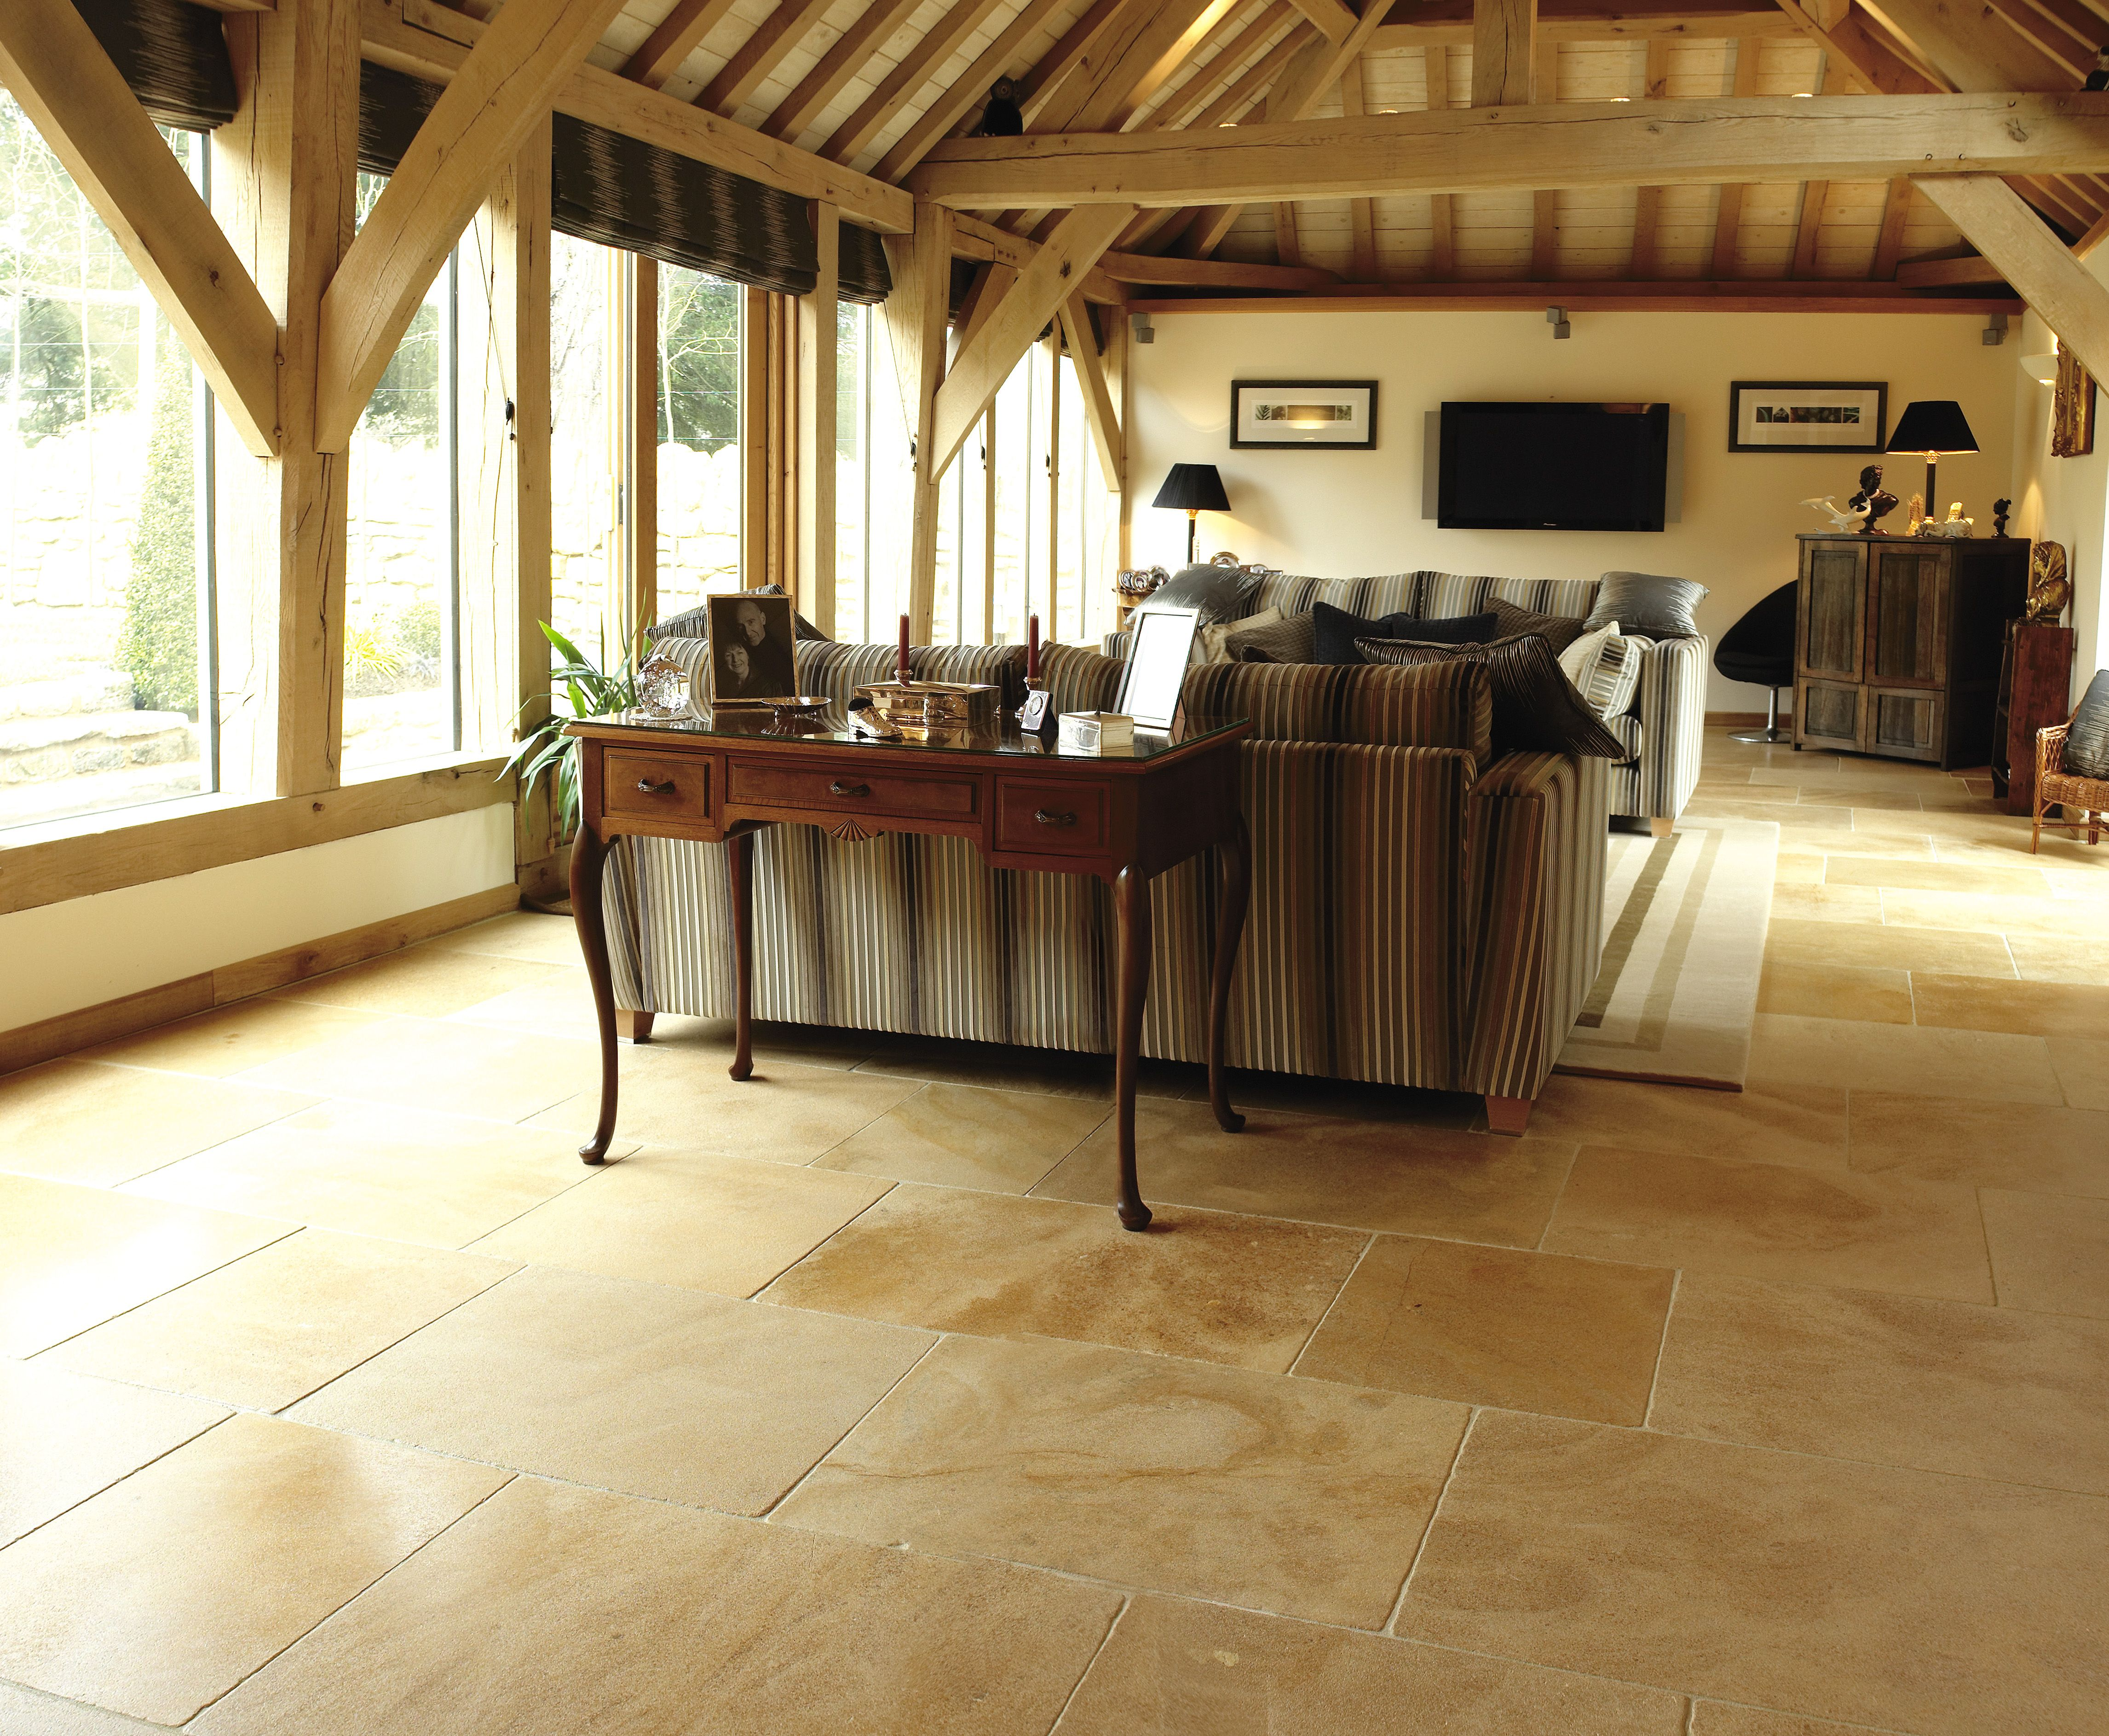 Barn Conversion Kitchens cotswold cream - a flagstone floor tile for kitchens of barn